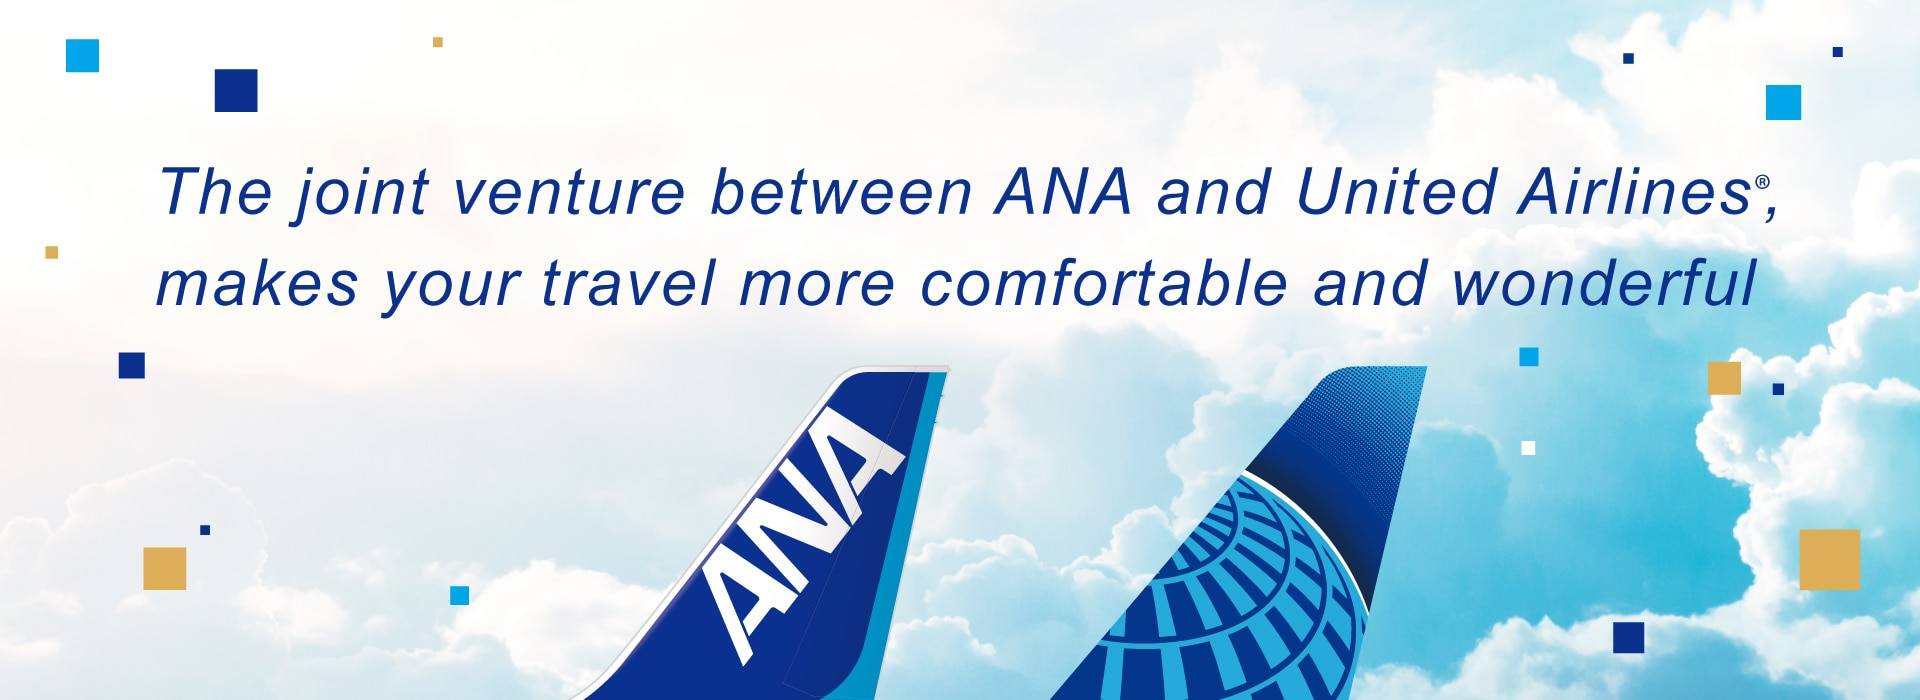 The joint venture between ANA and United Airlines, makes your travel more comfortable and wonderful